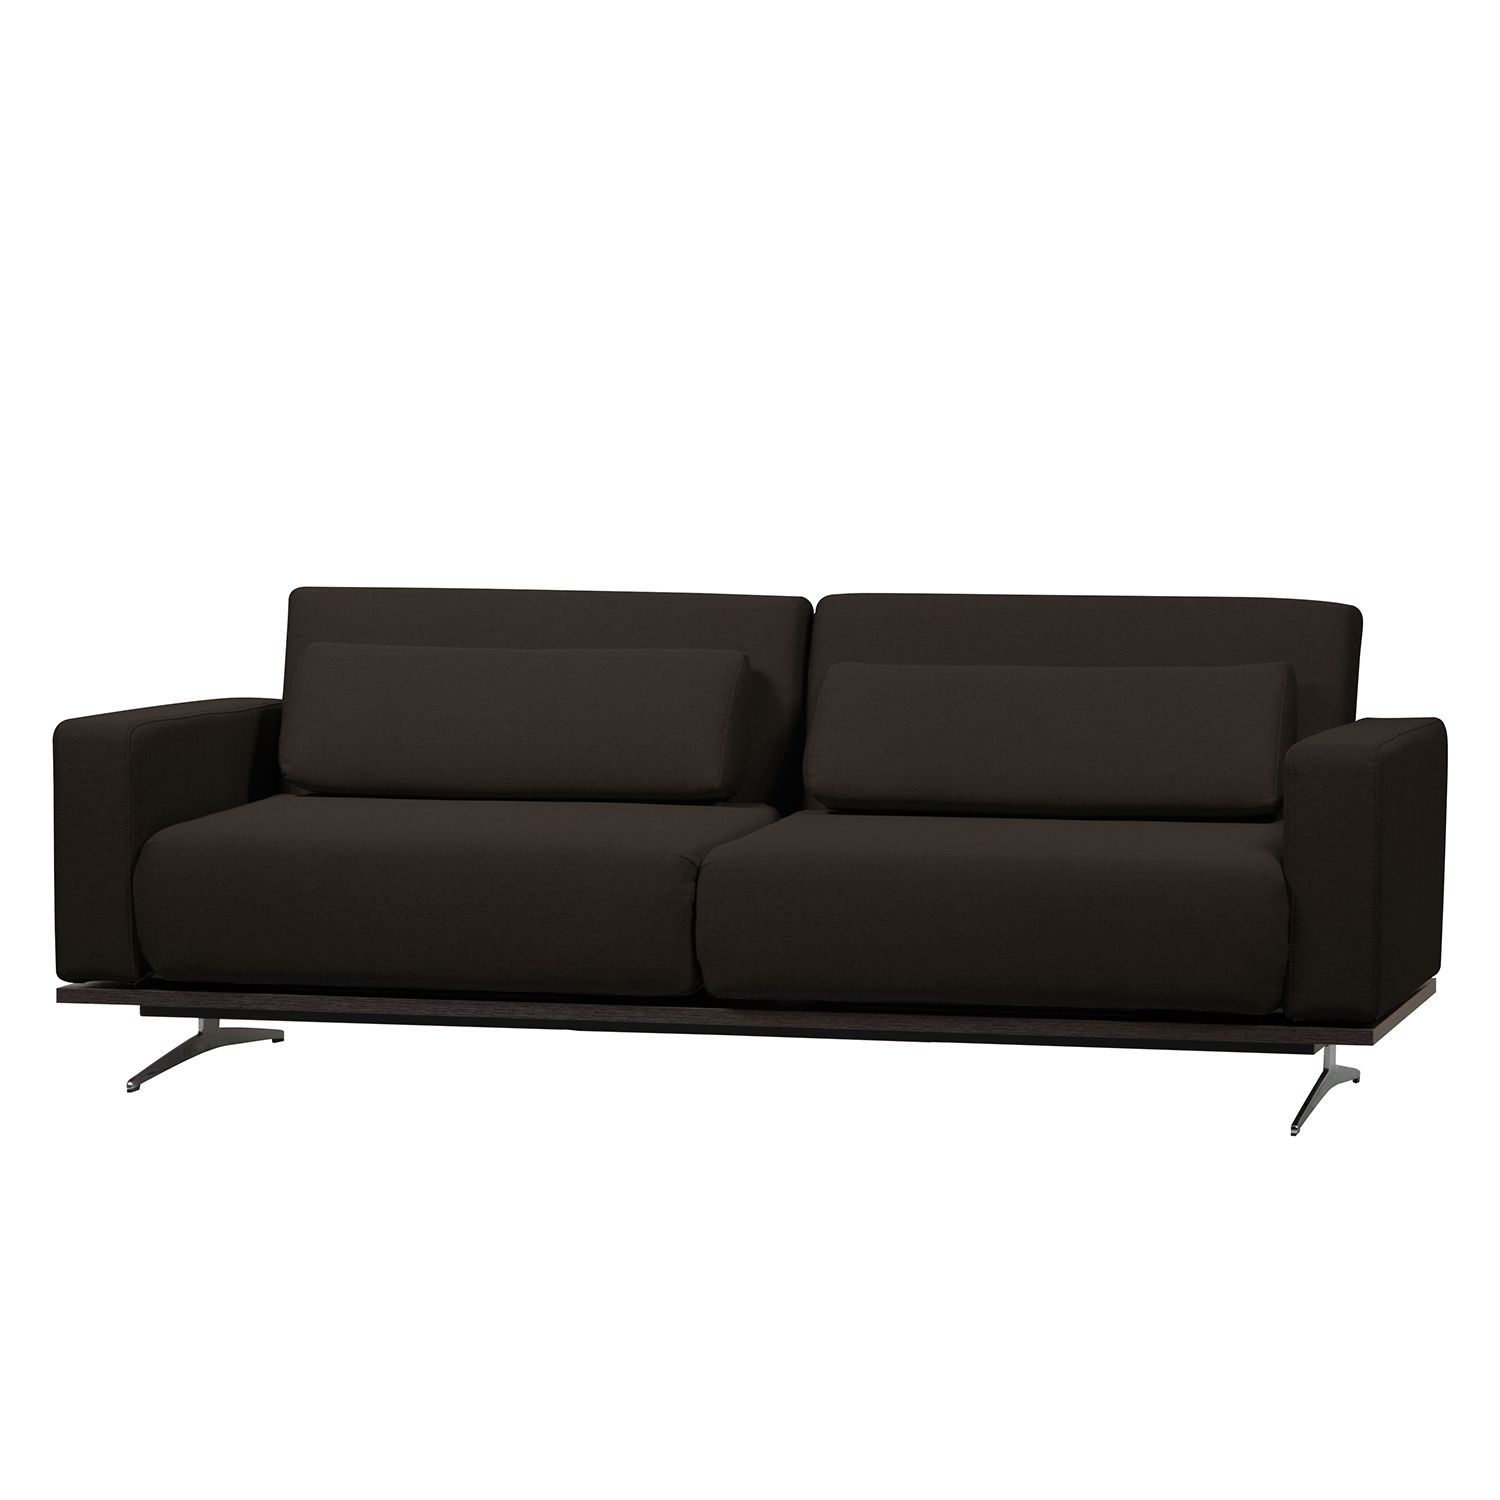 schlafsofas online kaufen m bel suchmaschine. Black Bedroom Furniture Sets. Home Design Ideas